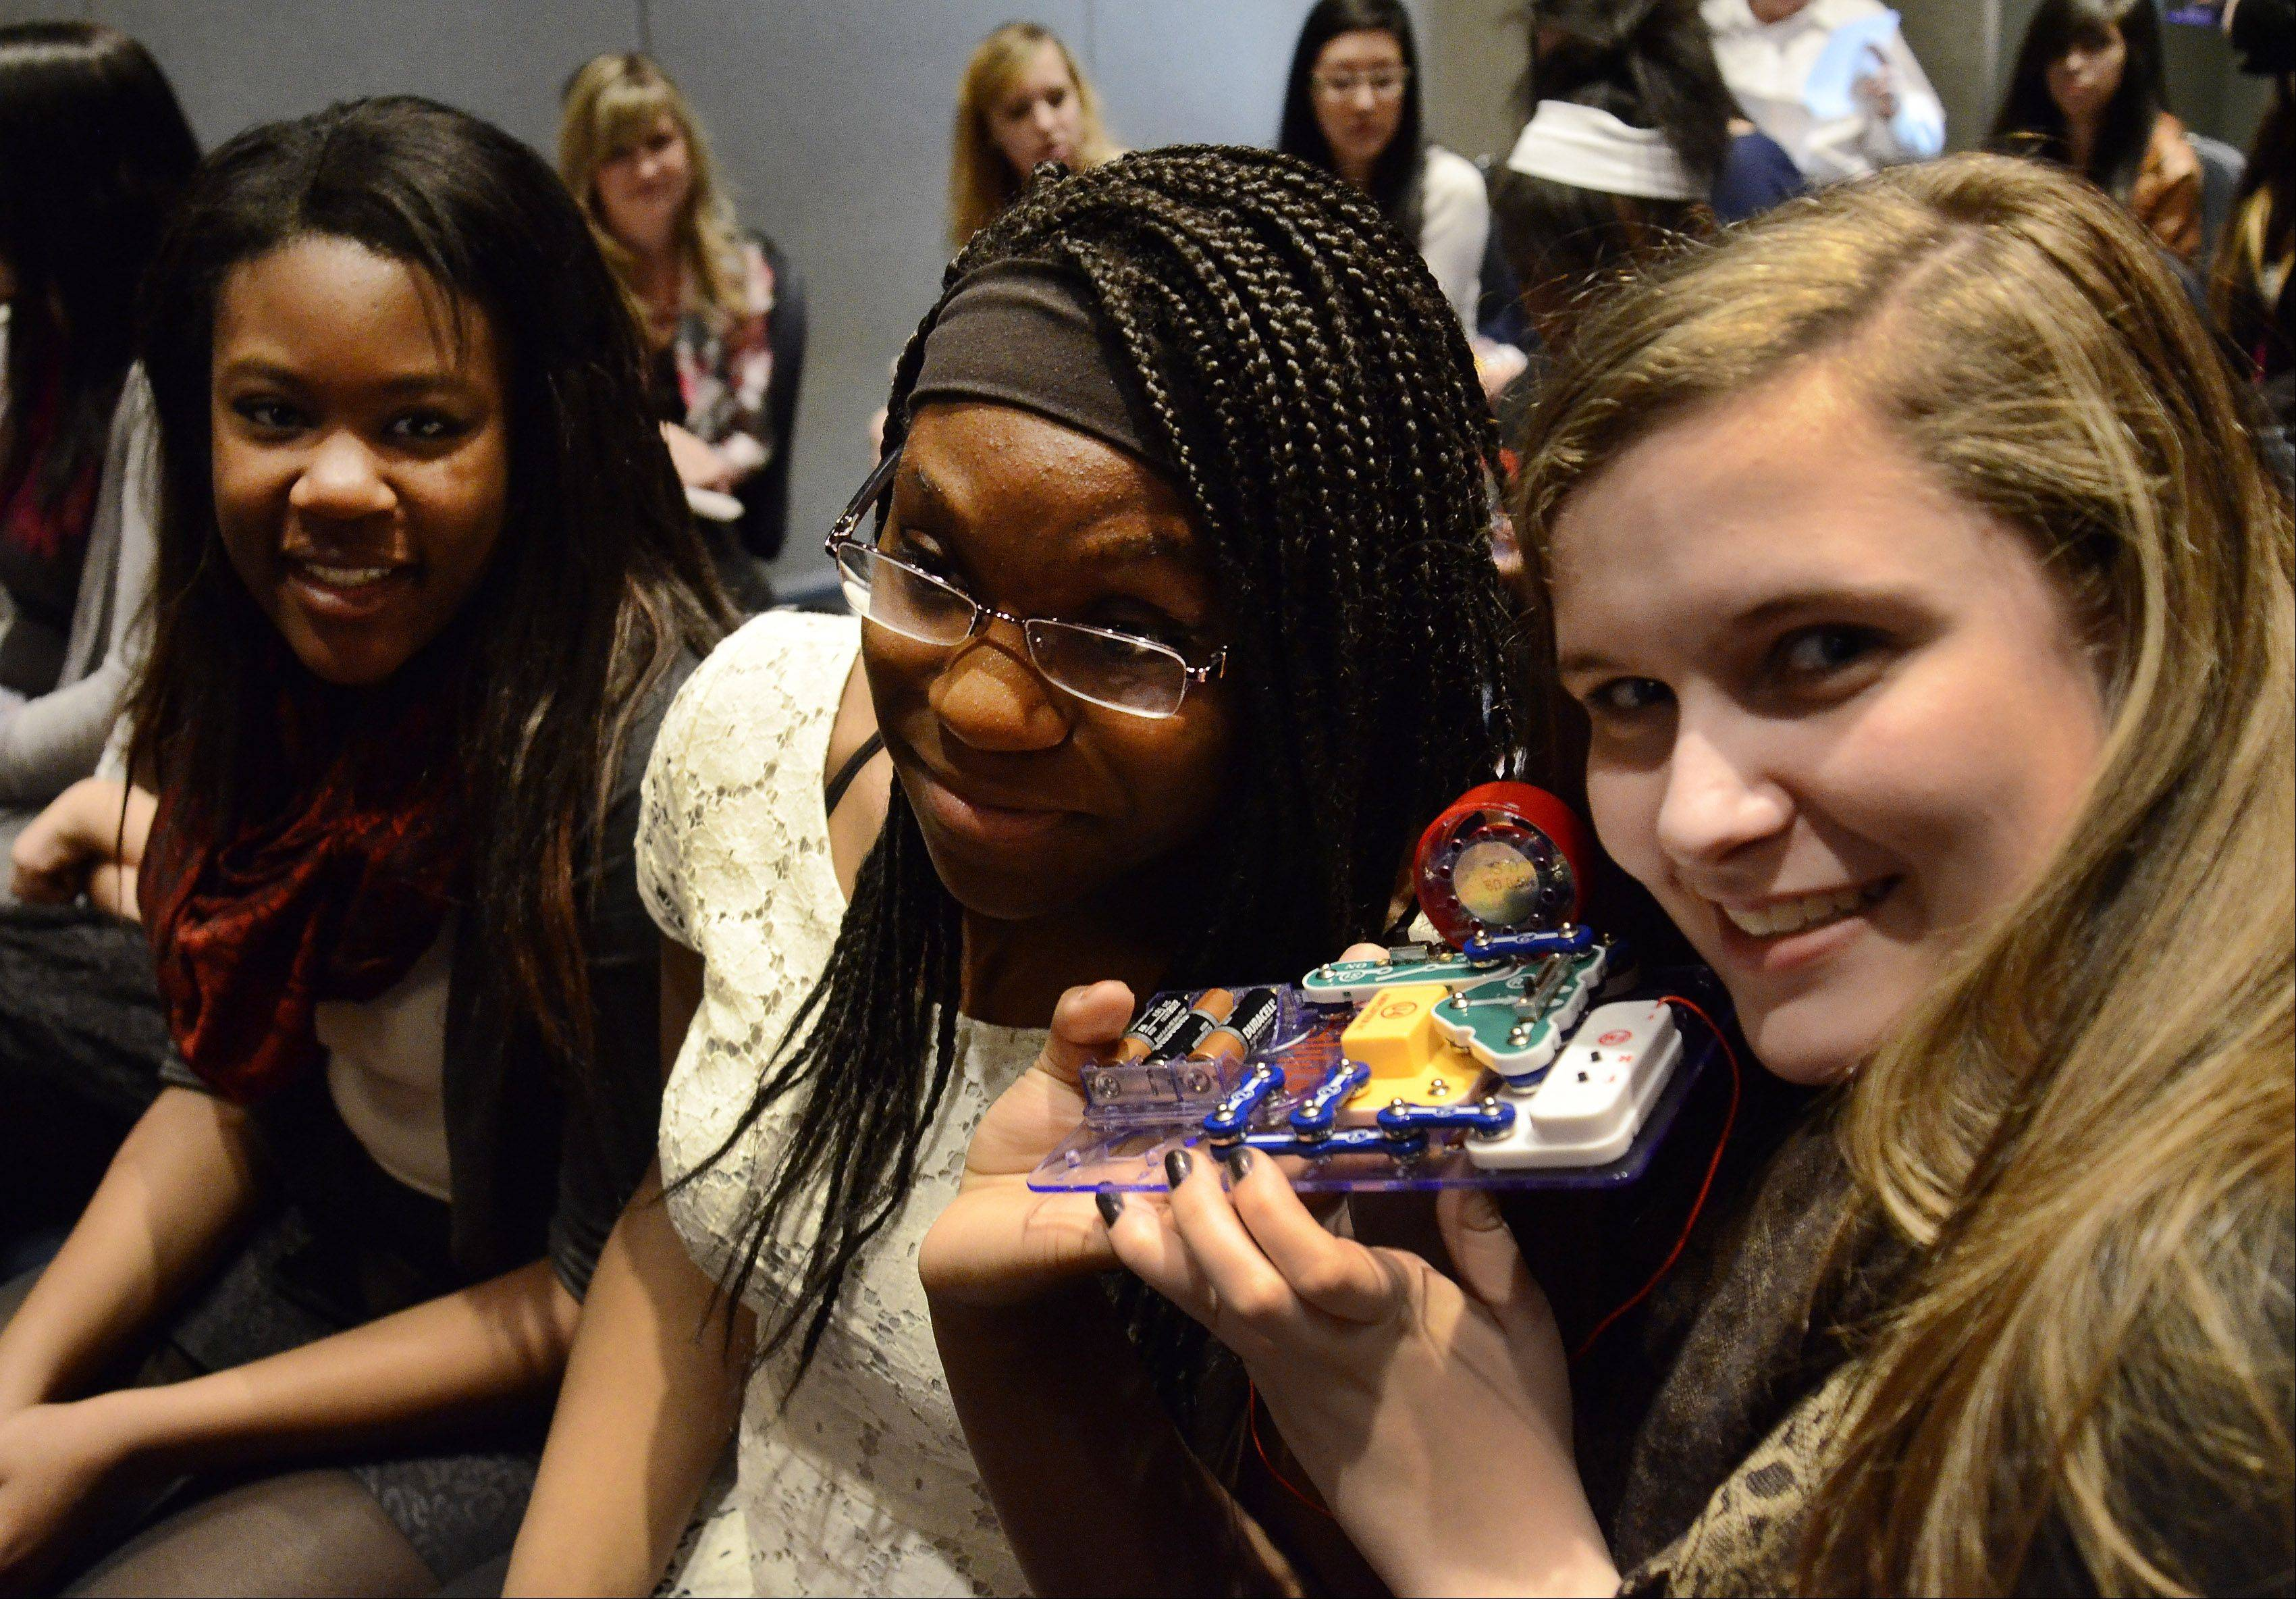 South Elgin High School freshmen from left, Lola Ojomo, Bridgette Williams and Rachel Priore tune in the FM radio they built from a kit Thursday during DeVry University�s HerWorld program, educating girls about in-demand STEM (science, technology, engineering, mathematics) careers. The program was at the Stonegate Conference Centre in Hoffman Estates.